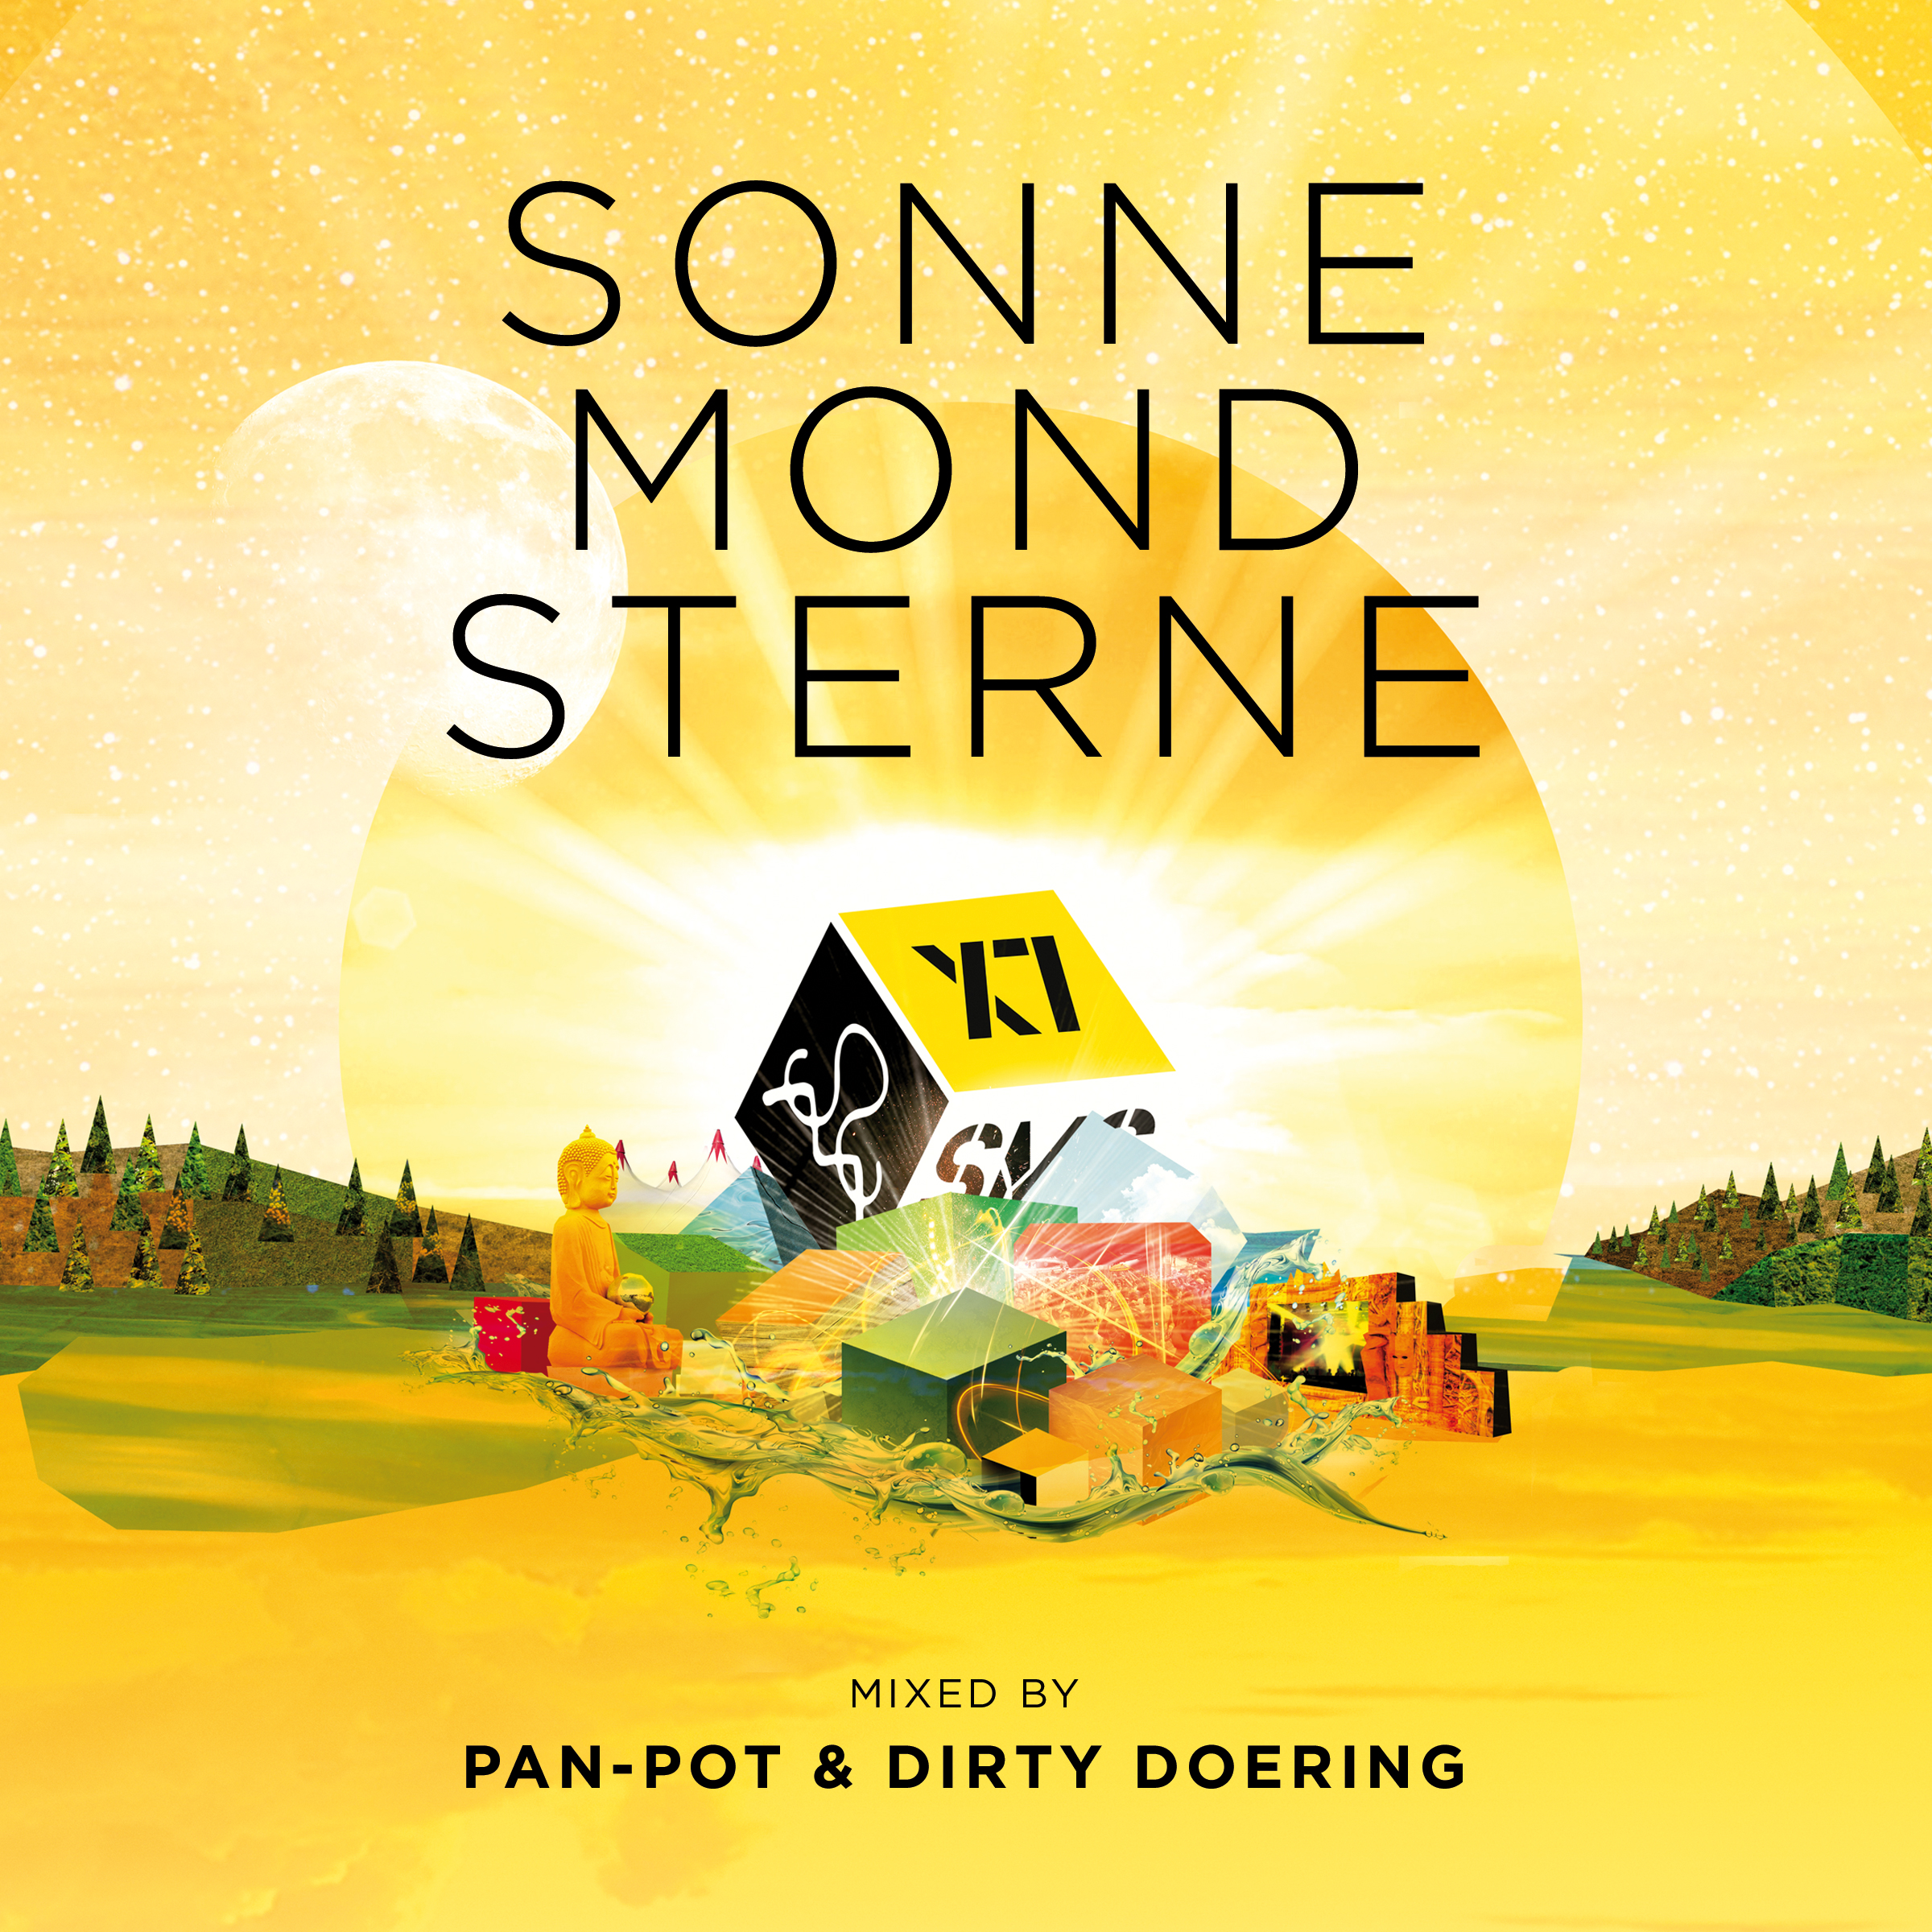 Pan-Pot & Dirty Doering mixen die neue SonneMondSterne-Compilation